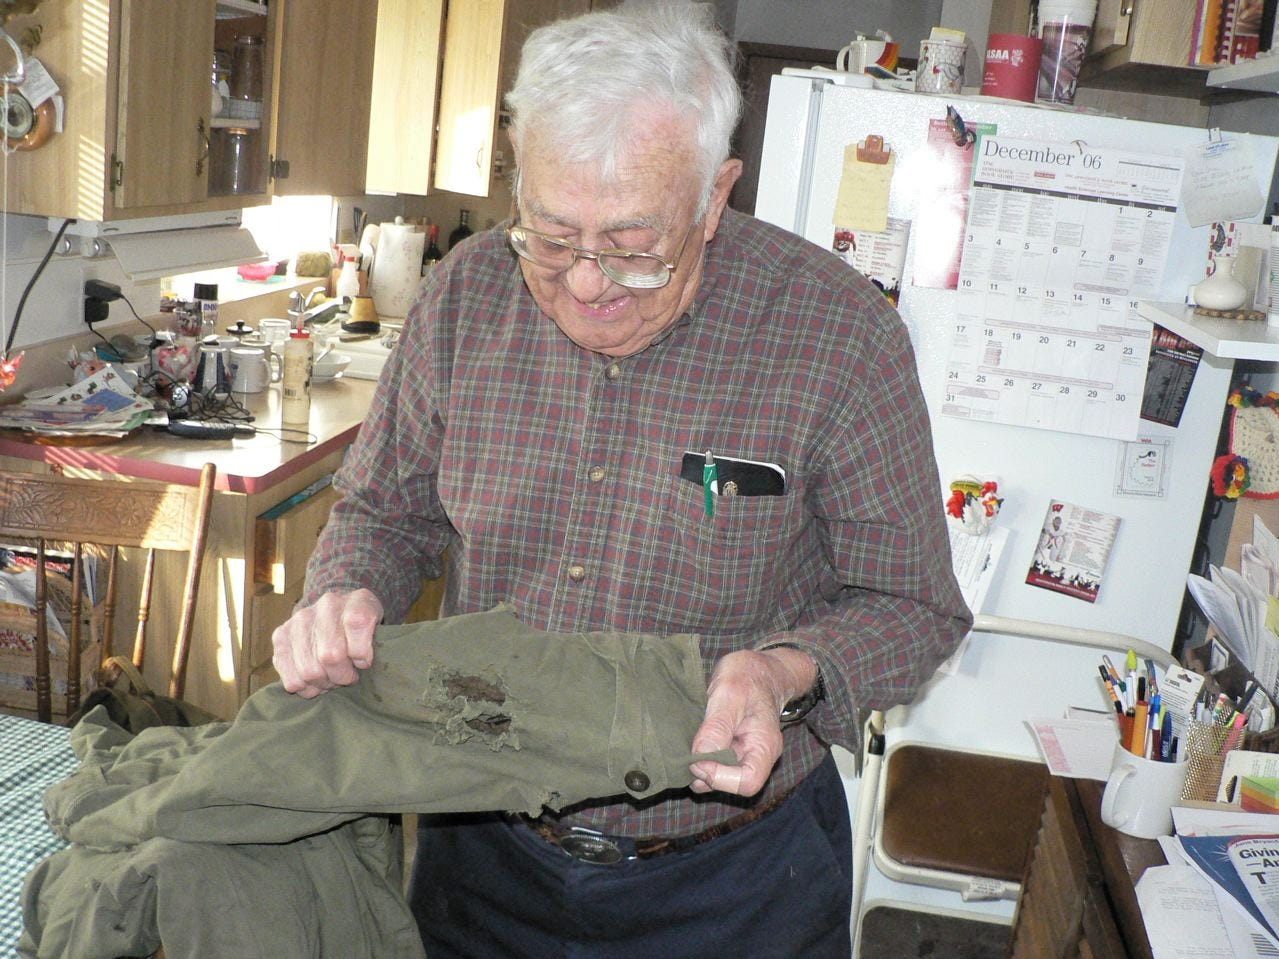 Milt Sunde, longtime poultry expert at the UW-Madison surveys the shrapnel holes in his army jacket that he was wearing when shells exploded nearby.  He survived World War II unhurt.